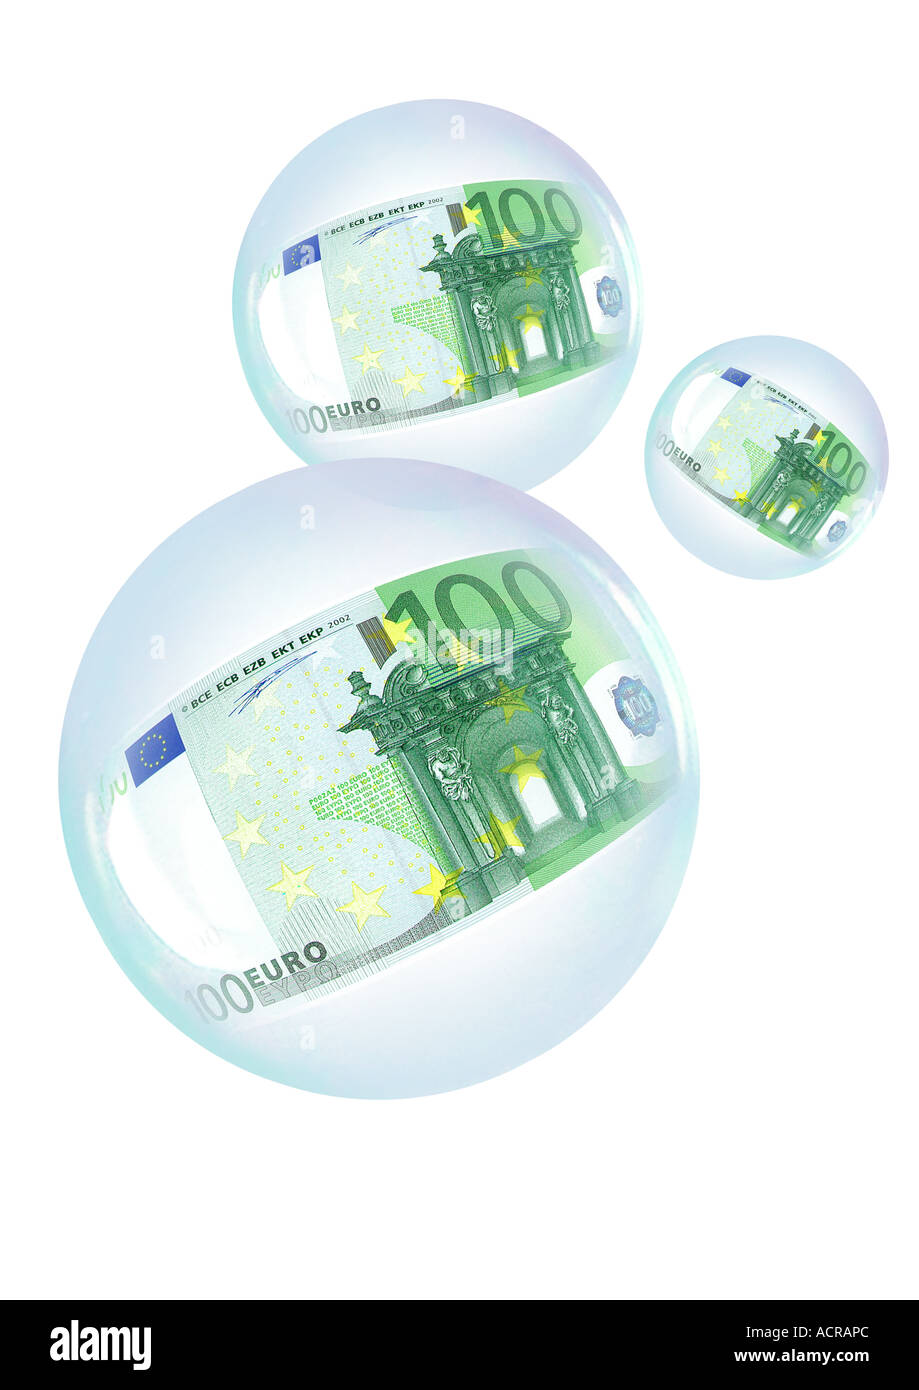 soap bubbles with 100 Euro Seifenblasen mit 100 Euro Stock Photo